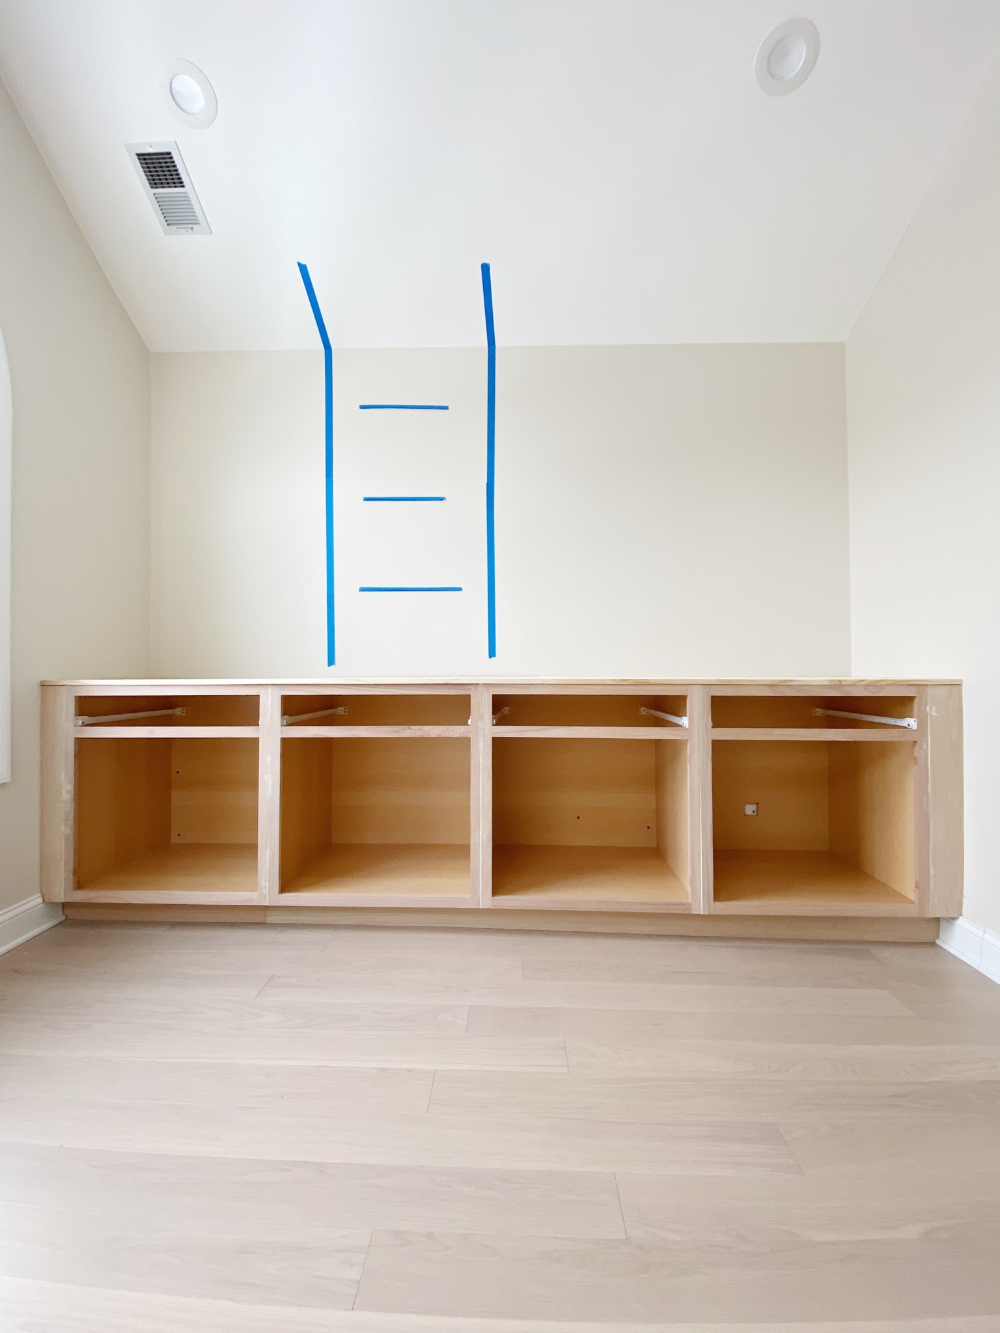 How to Install DIY Built-In Cabinets | The DIY Playbook in ...